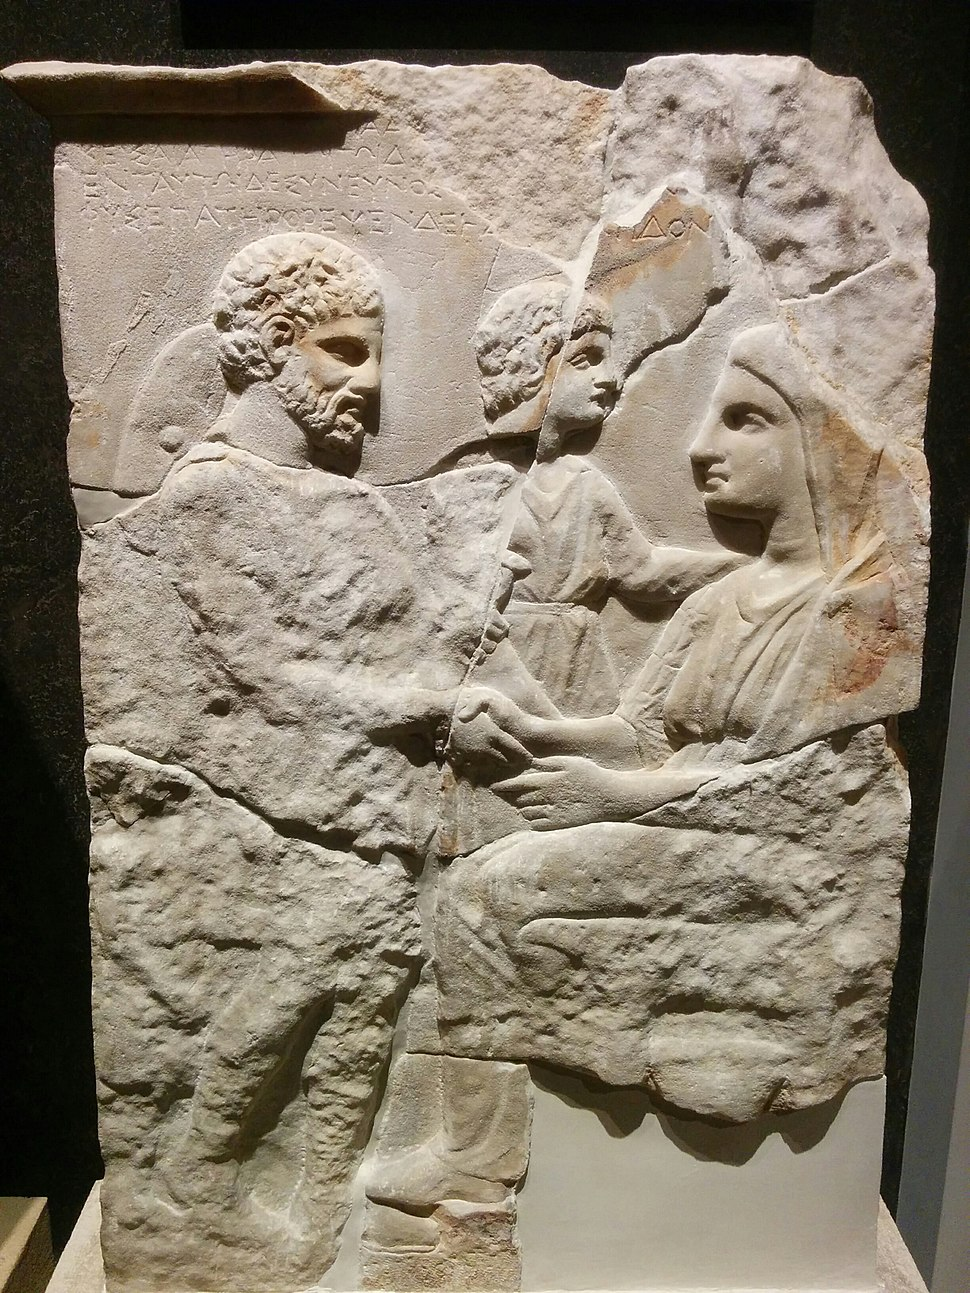 Relief inscribed stele, mid 4th century B.C., Archaeological Museum of Thessaloniki